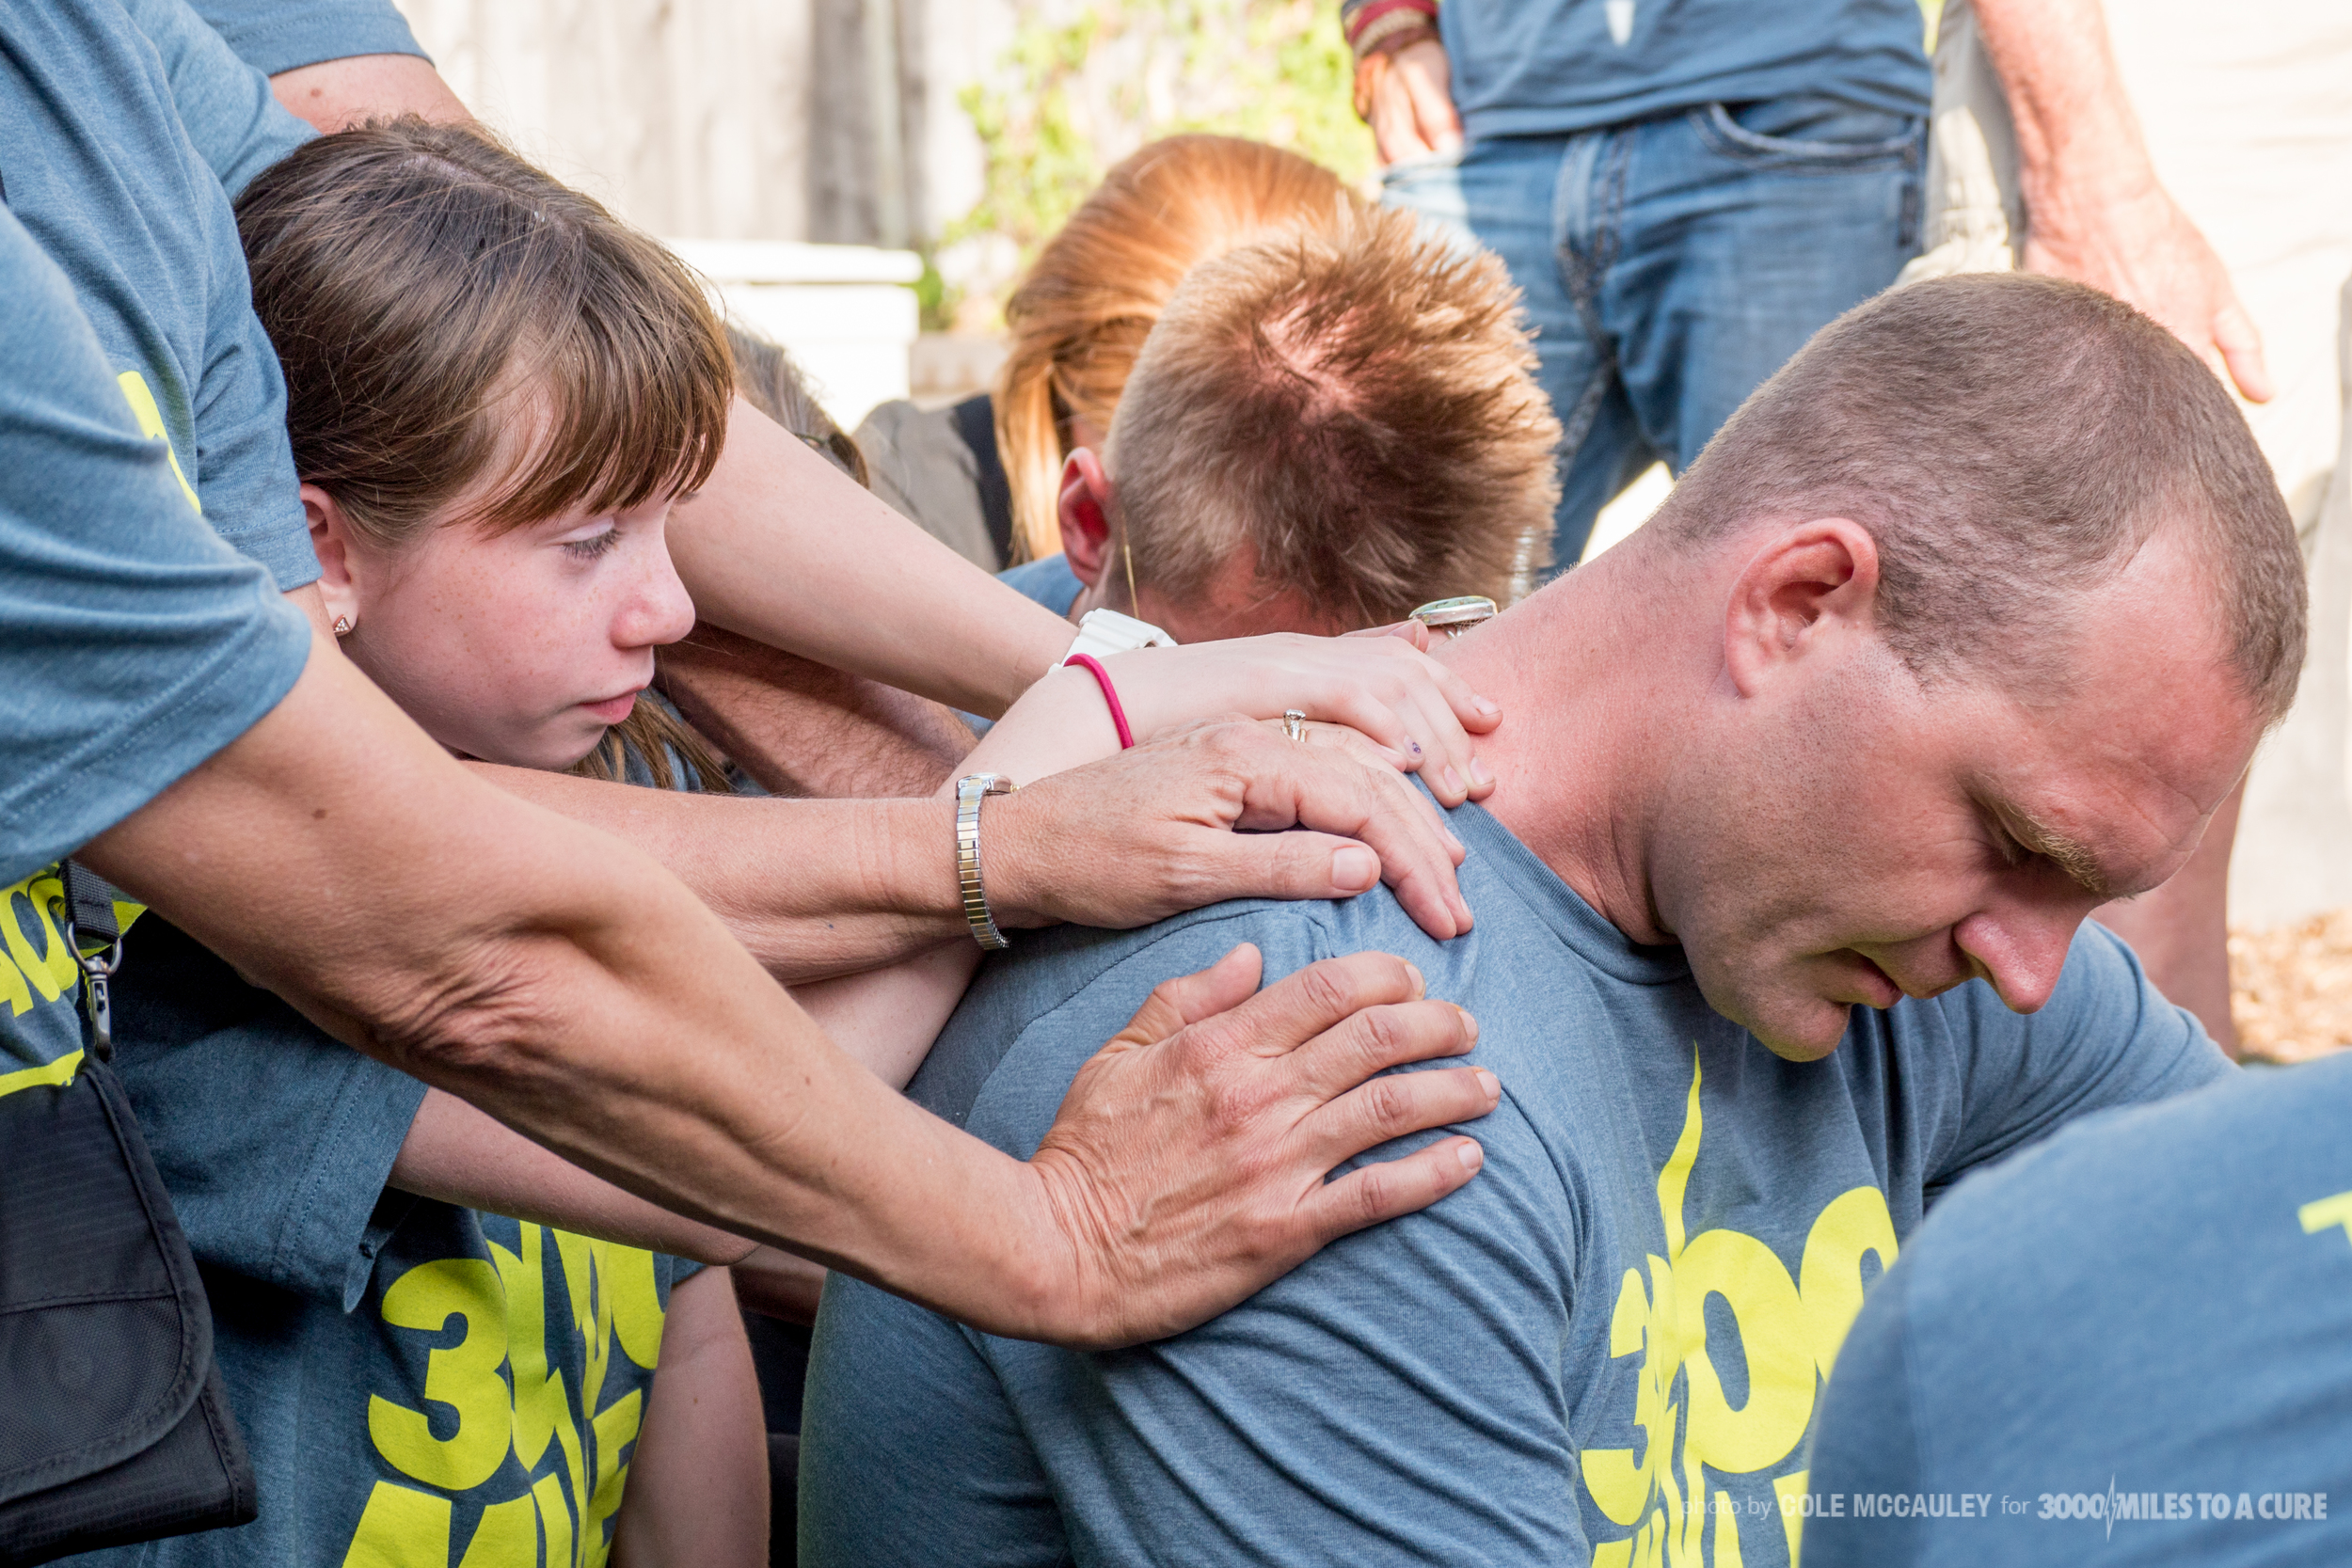 Rob started off his trip with a lot of praying. During the course of the trip, people were constantly praying over him and alongside him.